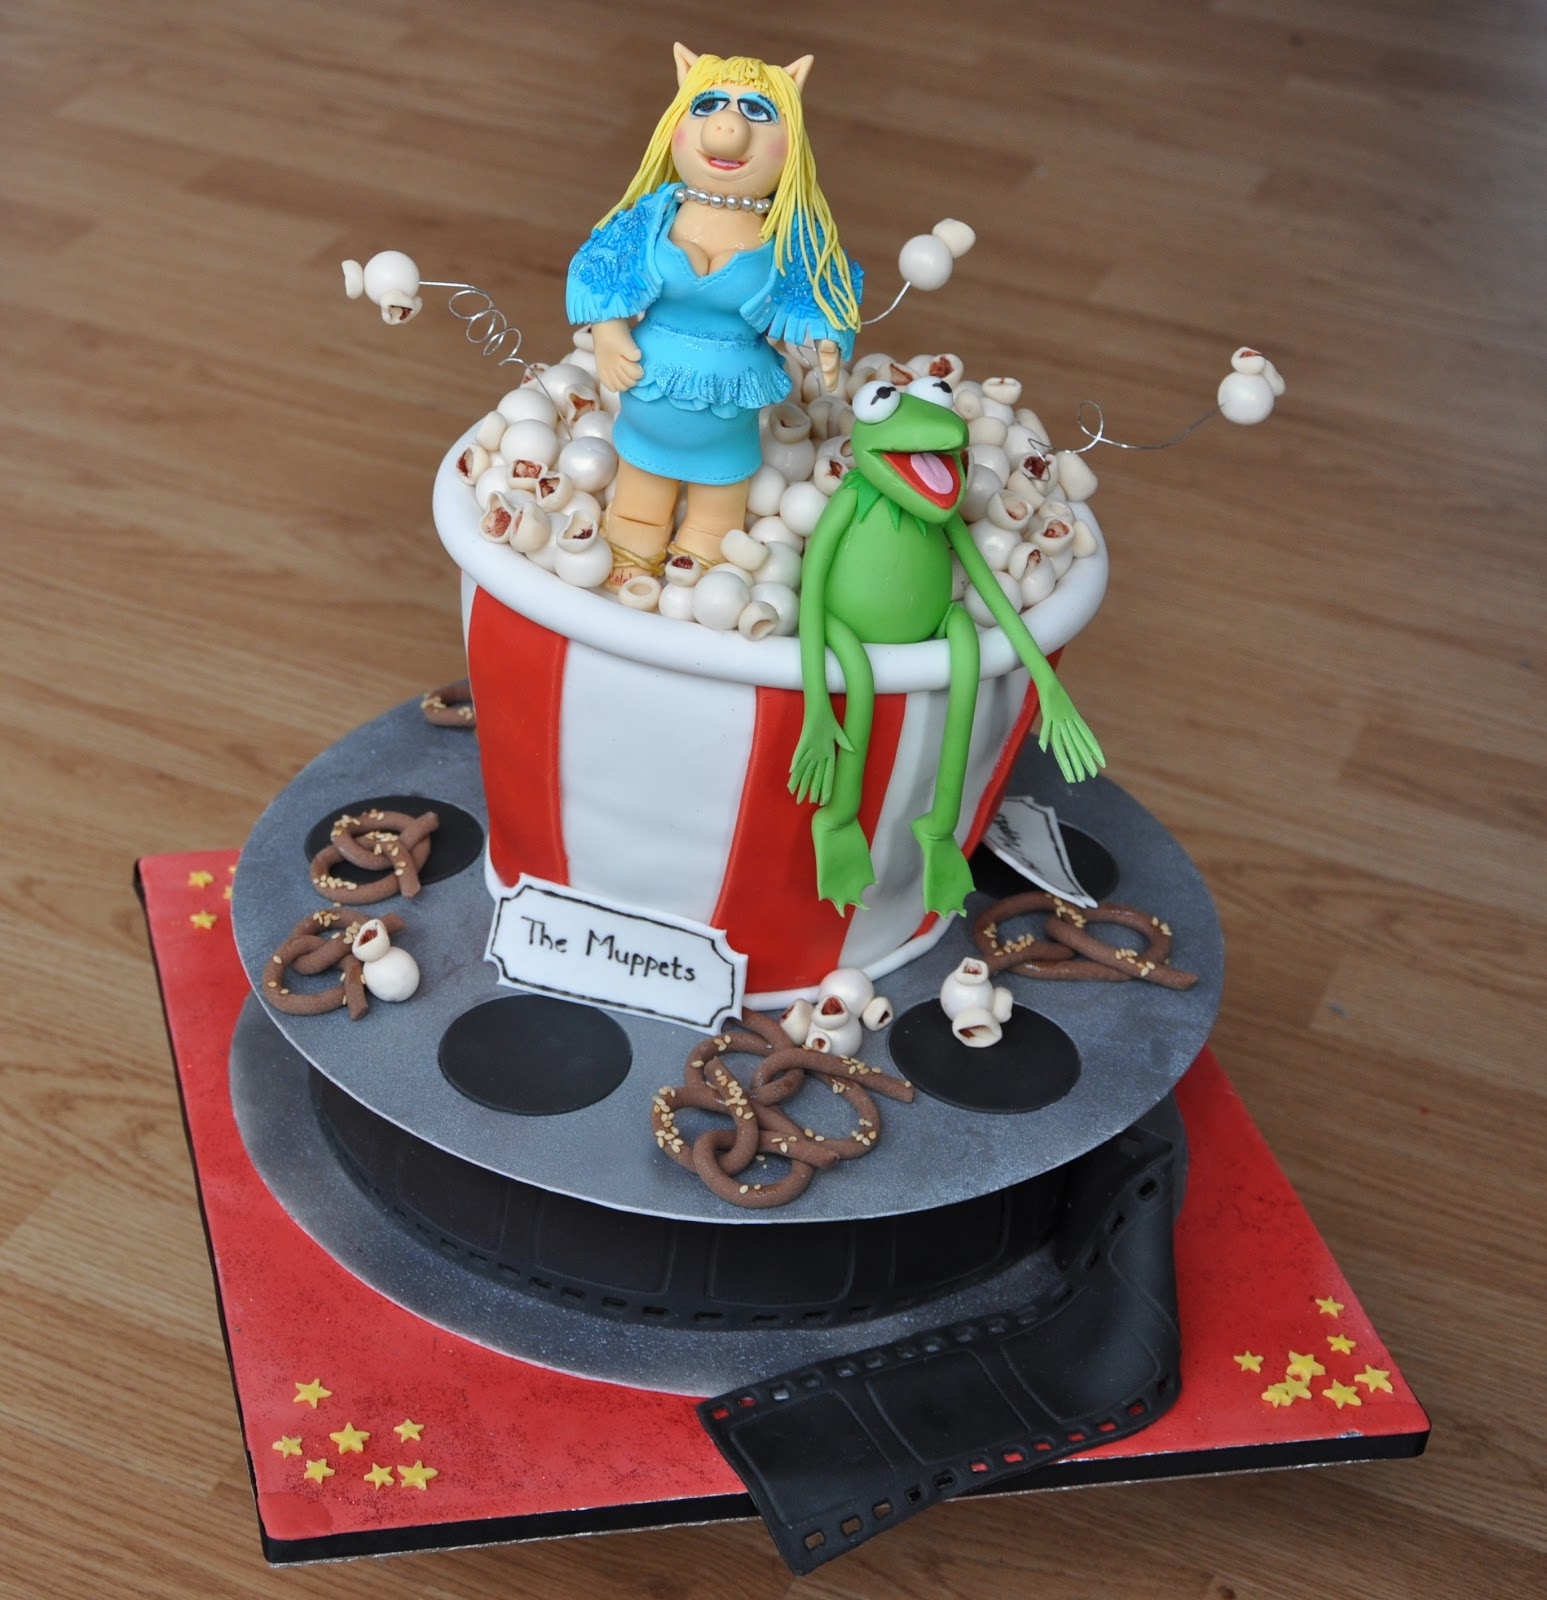 1000 Images About December Muppets Christmas On Pinterest: Be-Cake: Muppets Cake